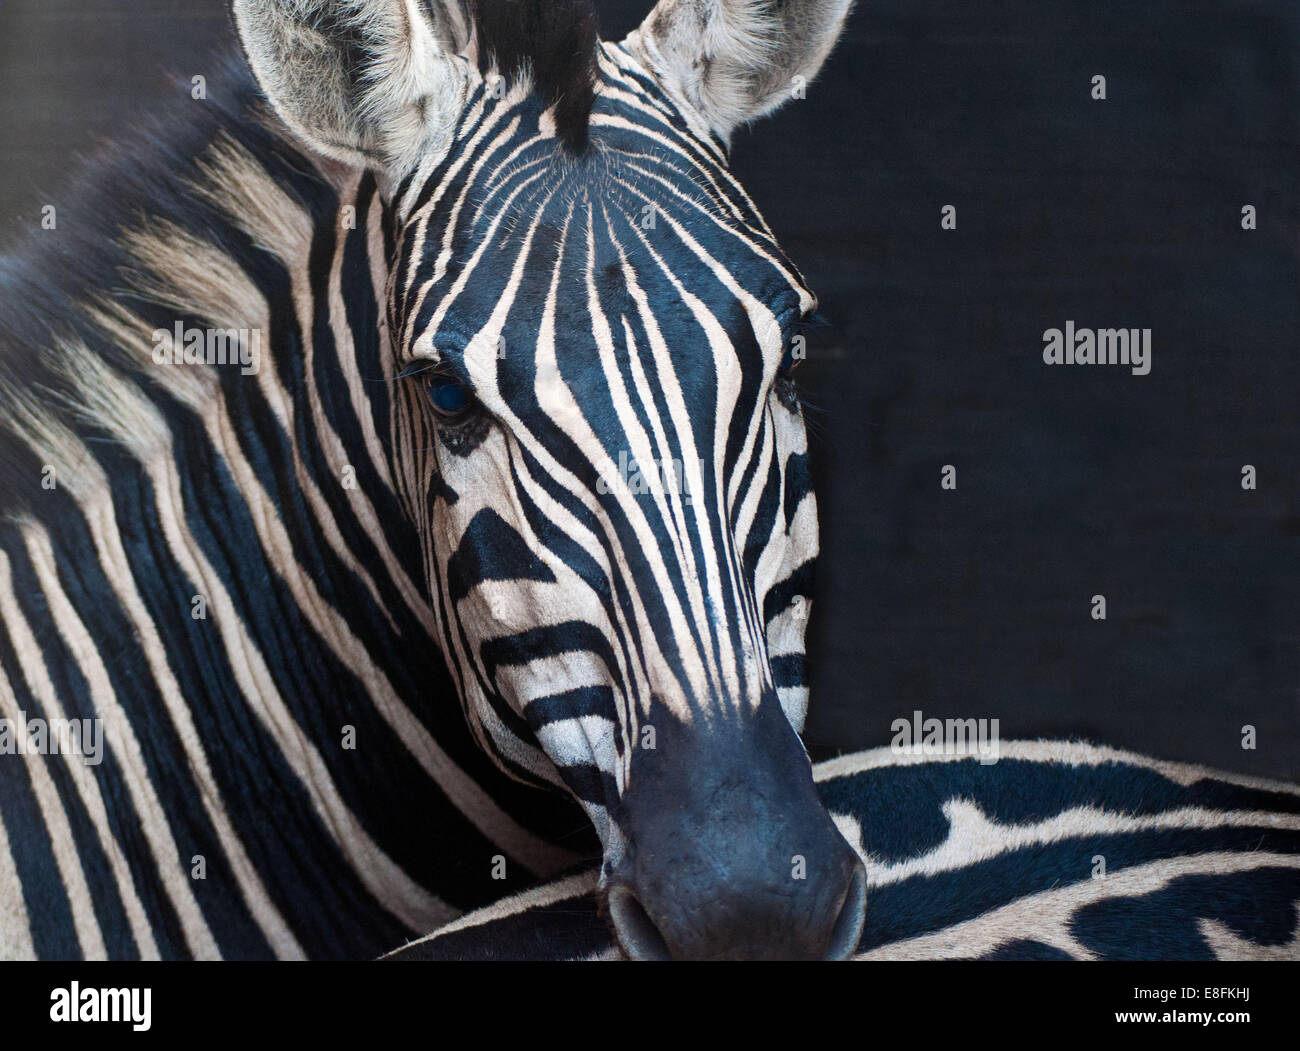 African Zebra, South Africa - Stock Image